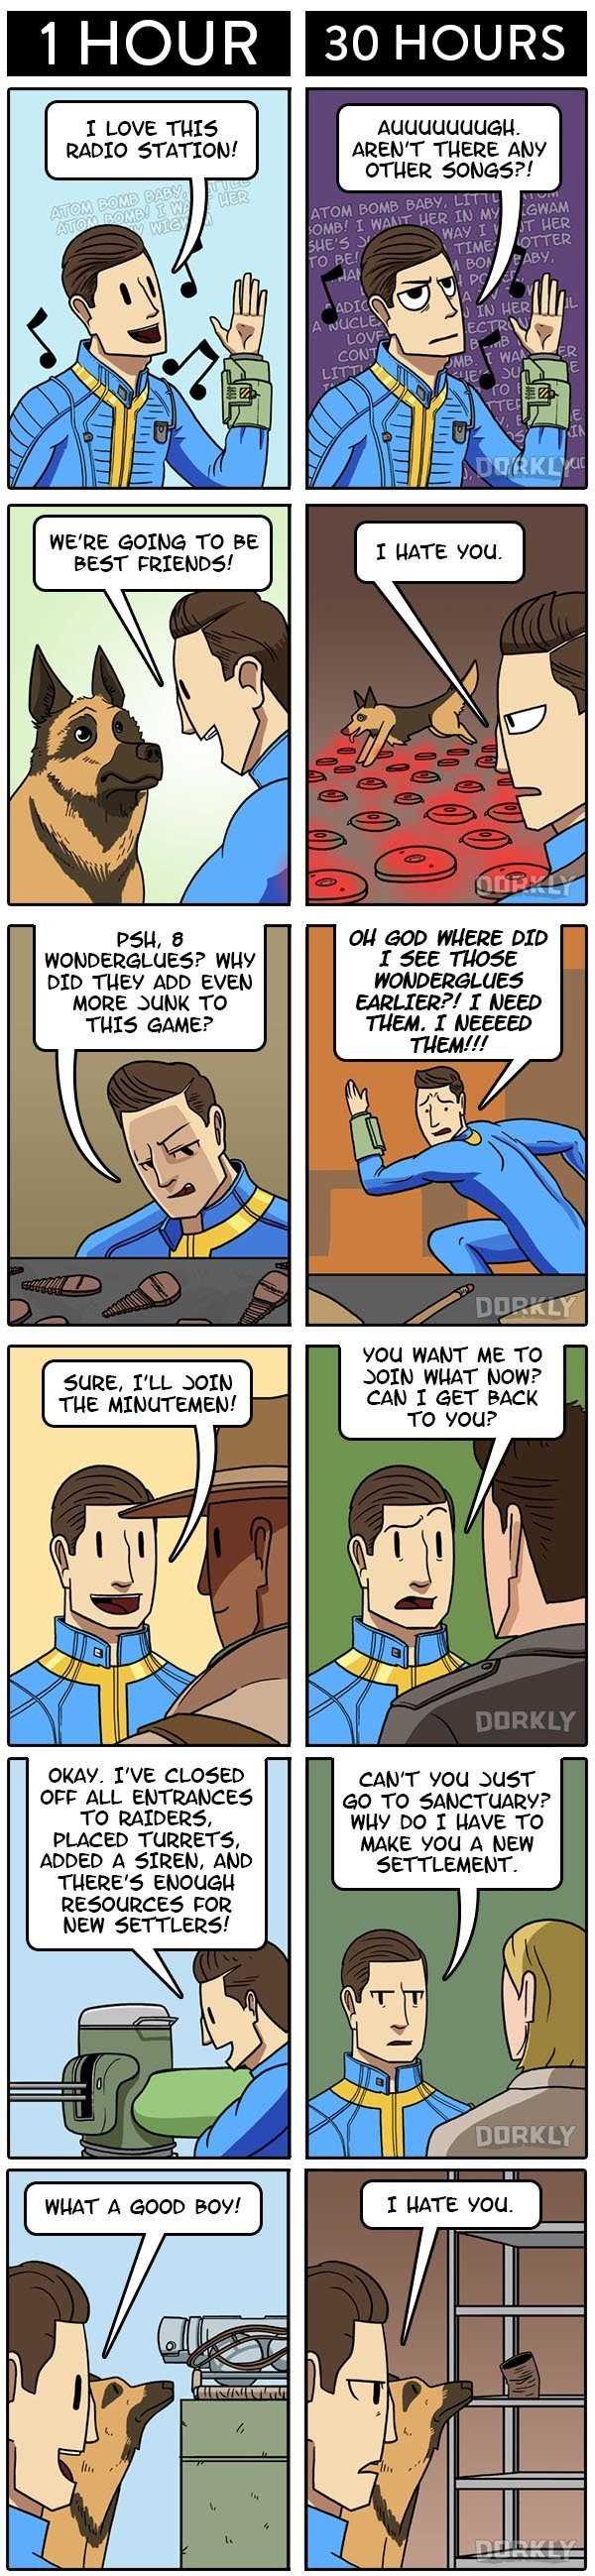 video games fallout 4 fatigue